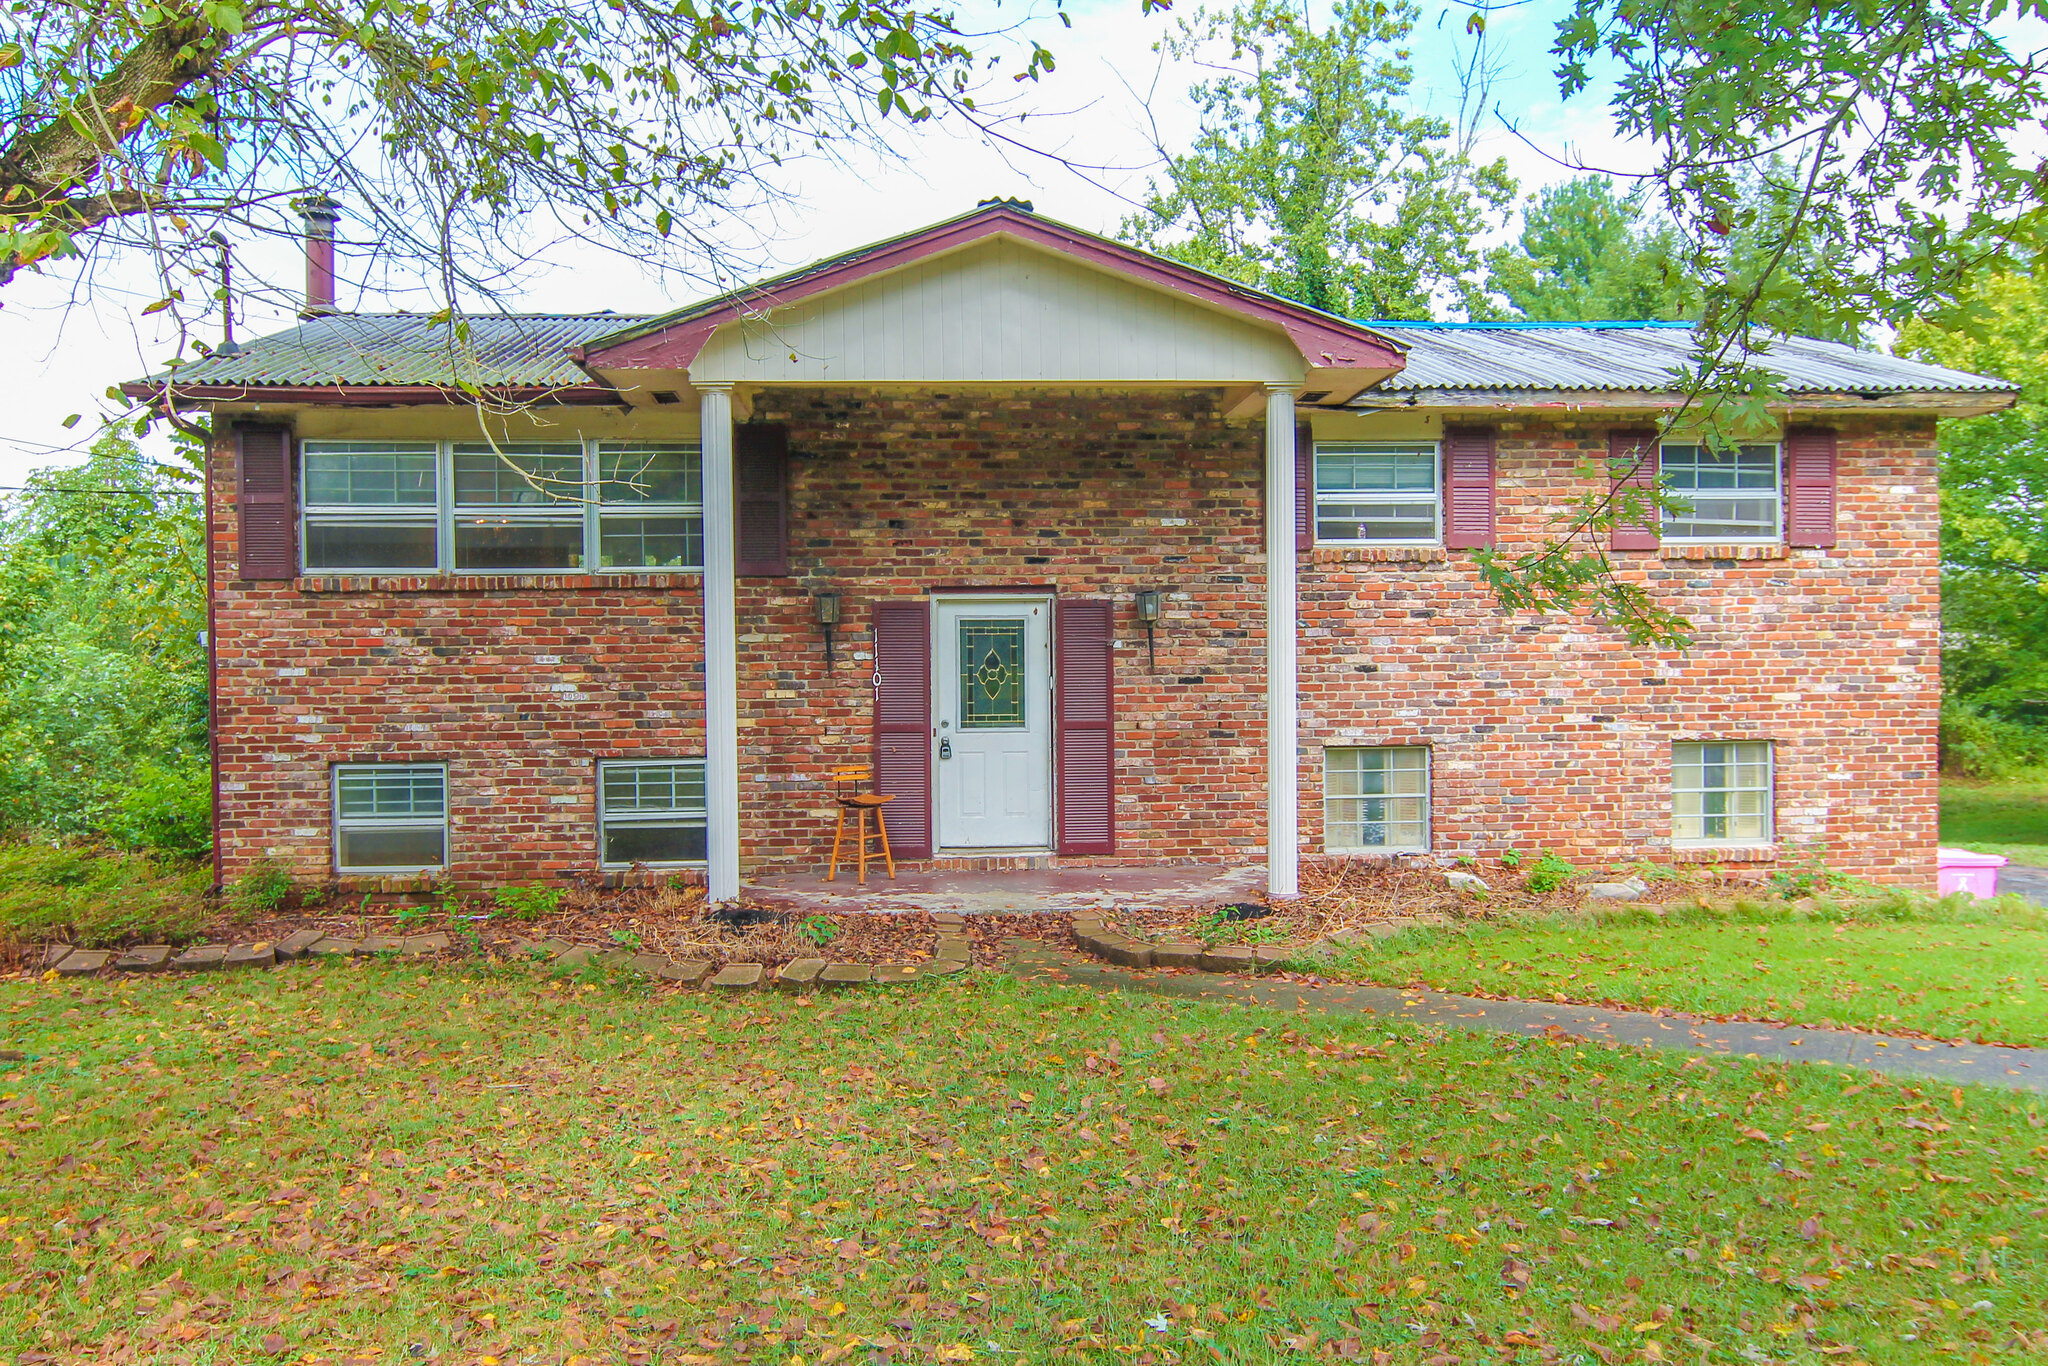 11101 Farr Drive, Knoxville, TN 37934